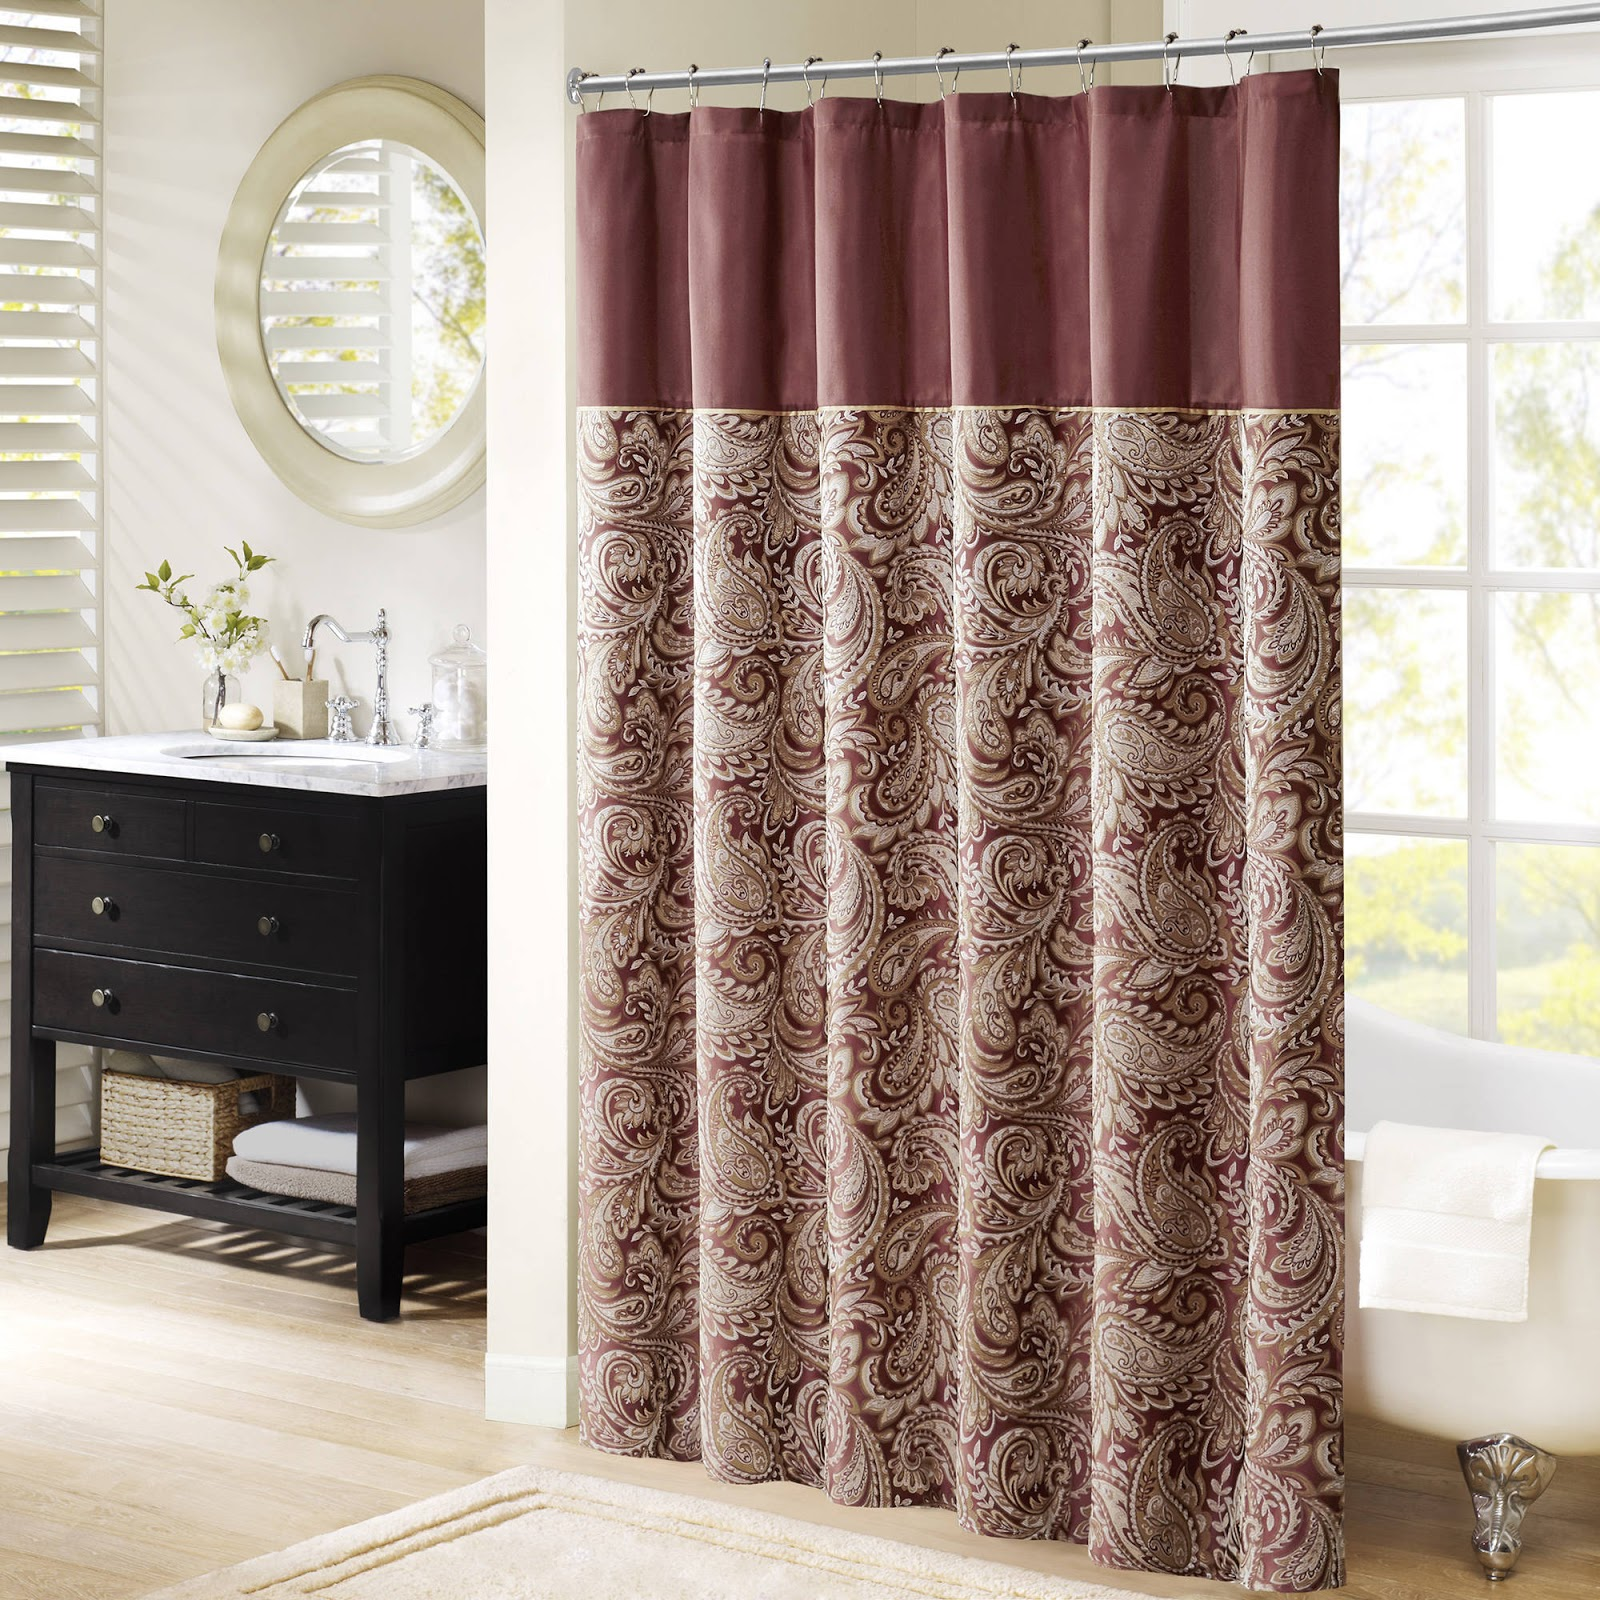 Curtain For Small Windows Stage Window In Door Shower On